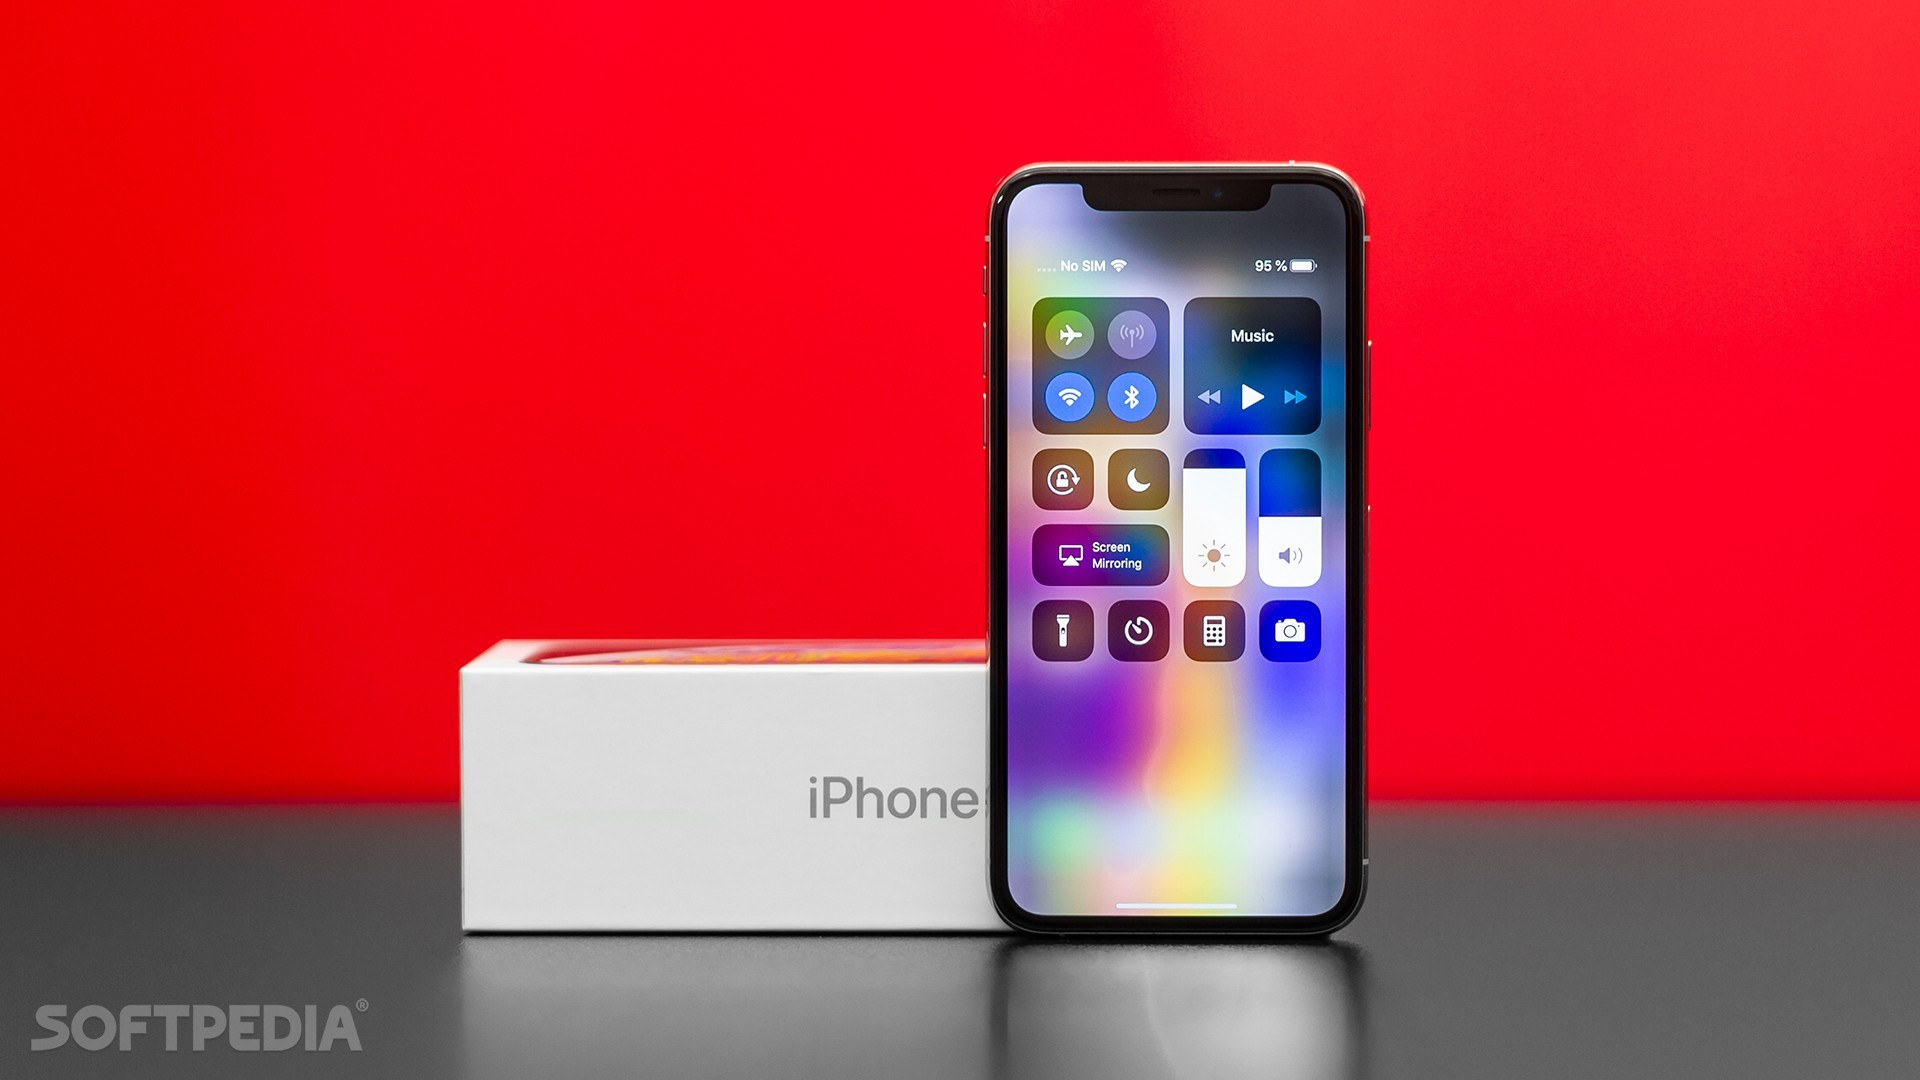 Apple reportedly cuts iPhone production by 10 percent for first quarter